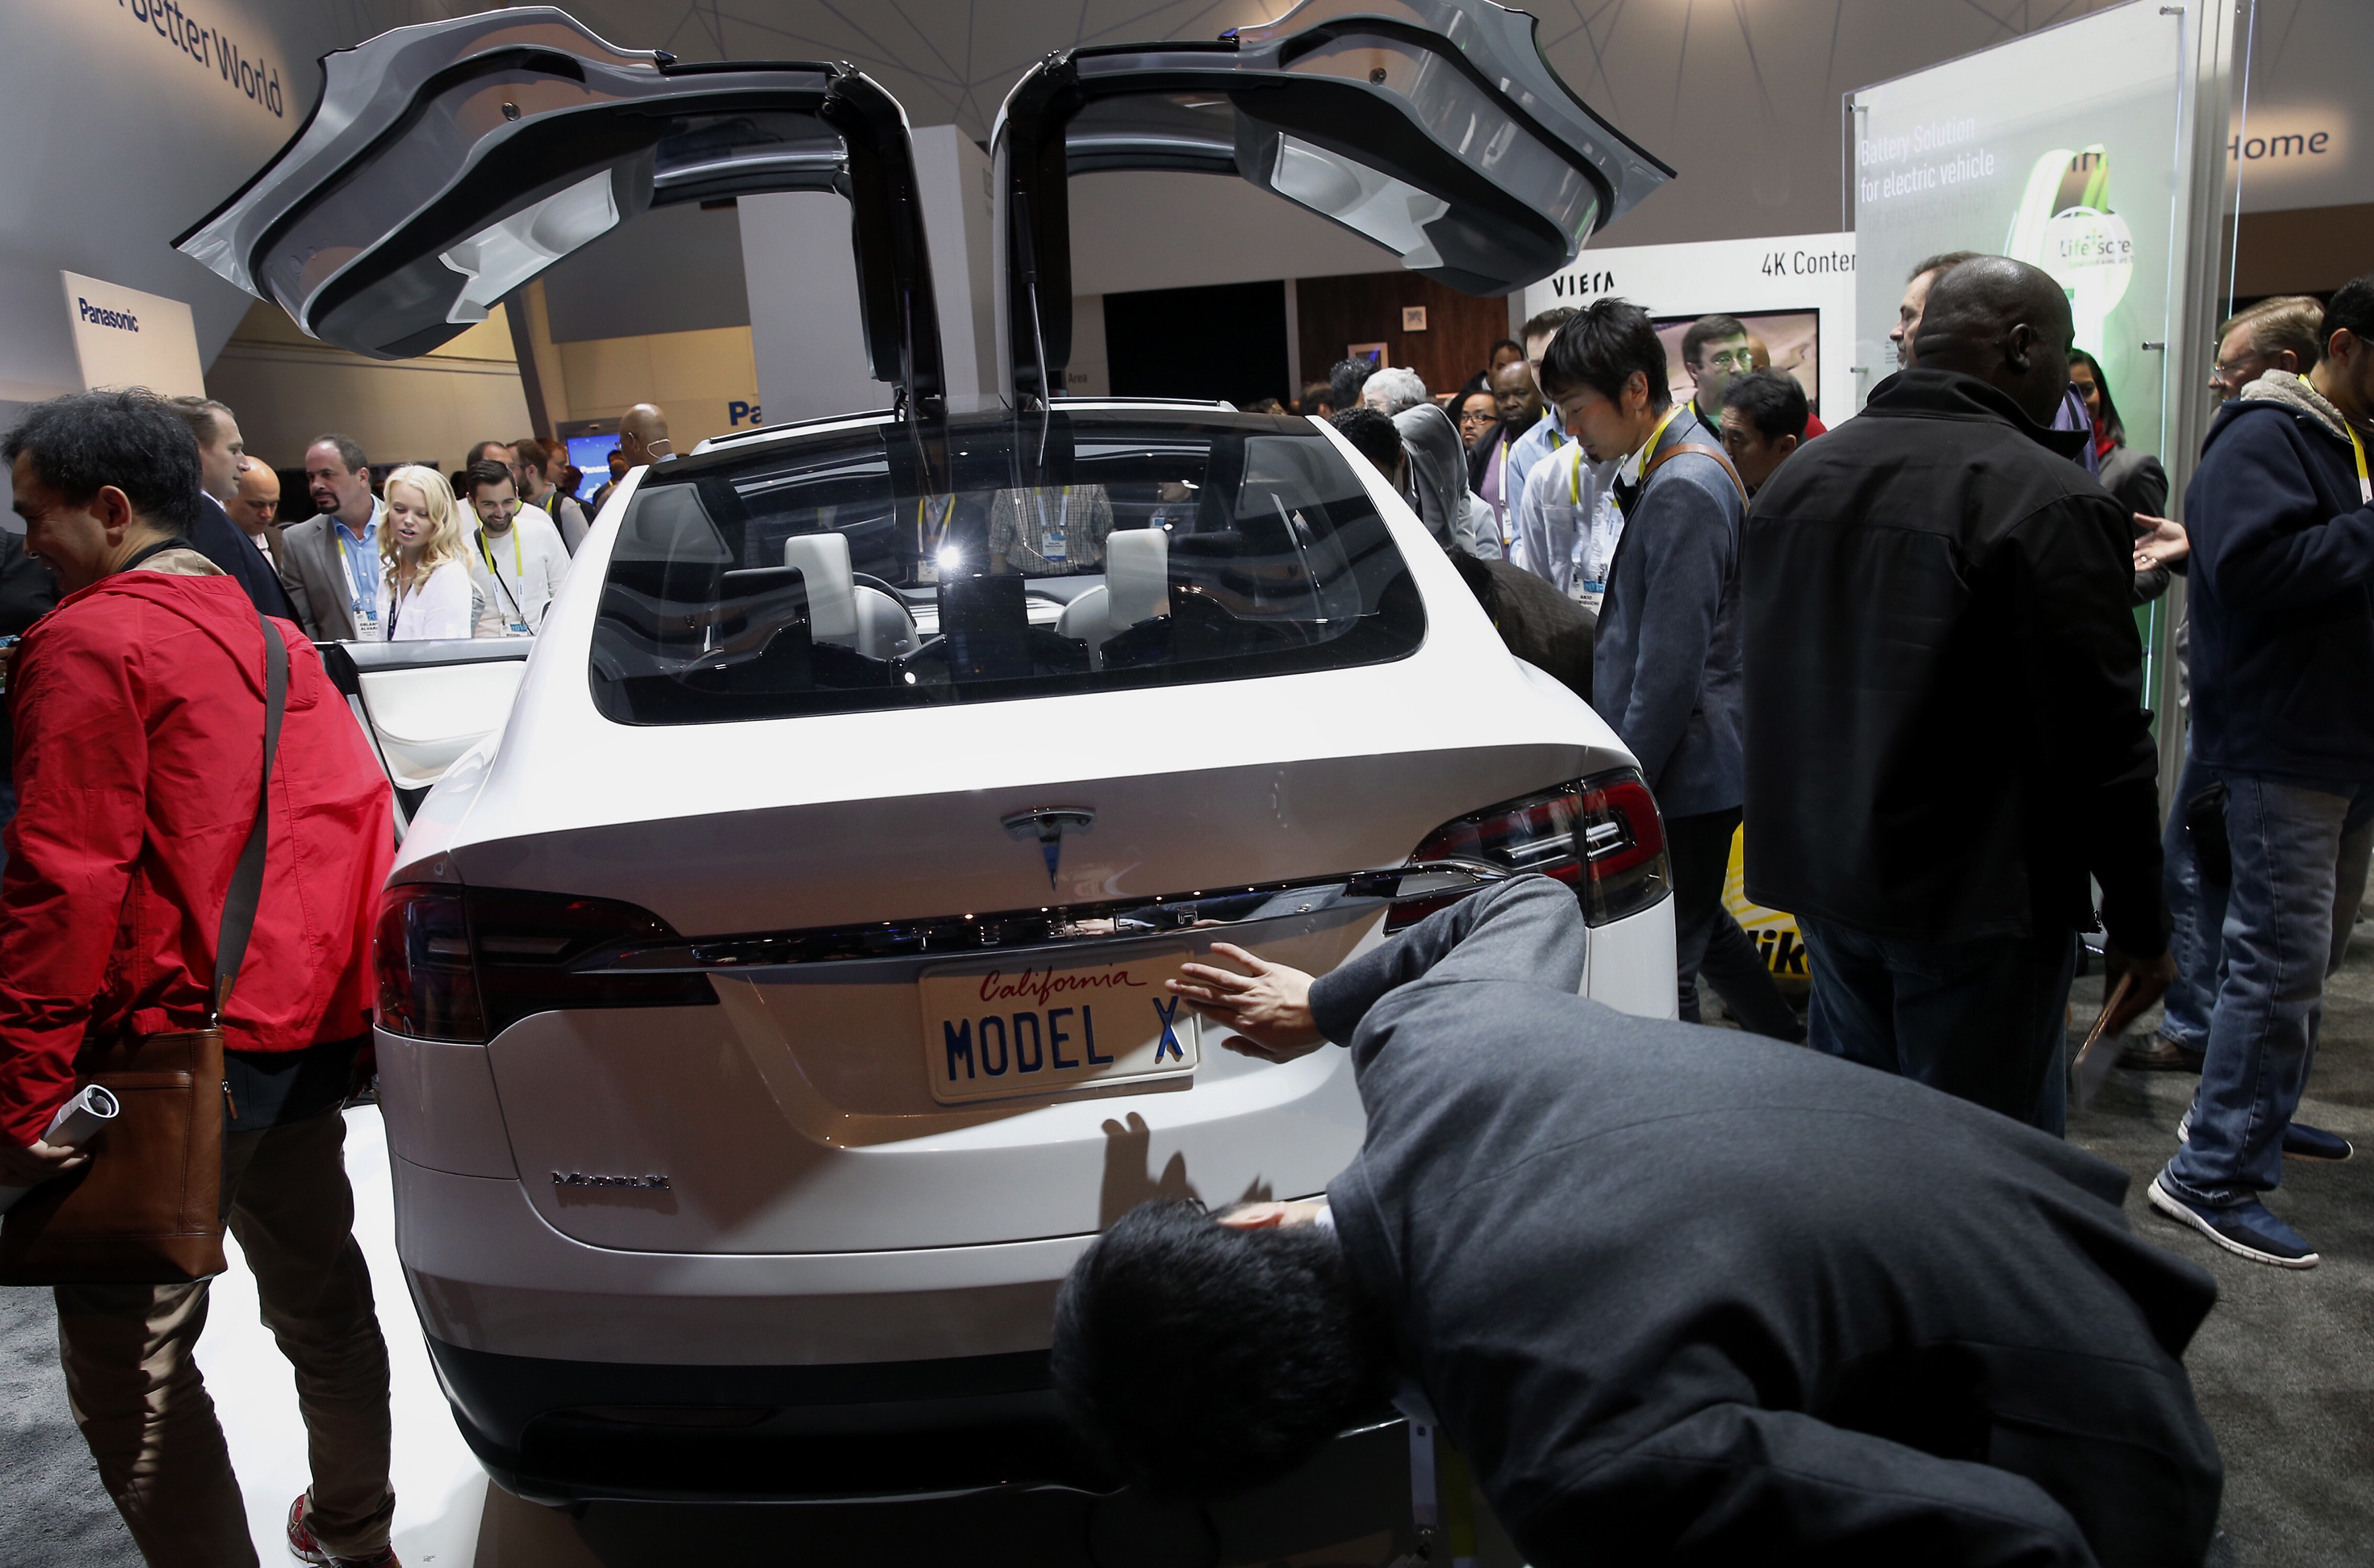 Inside The 2015 Consumer Electronics Show